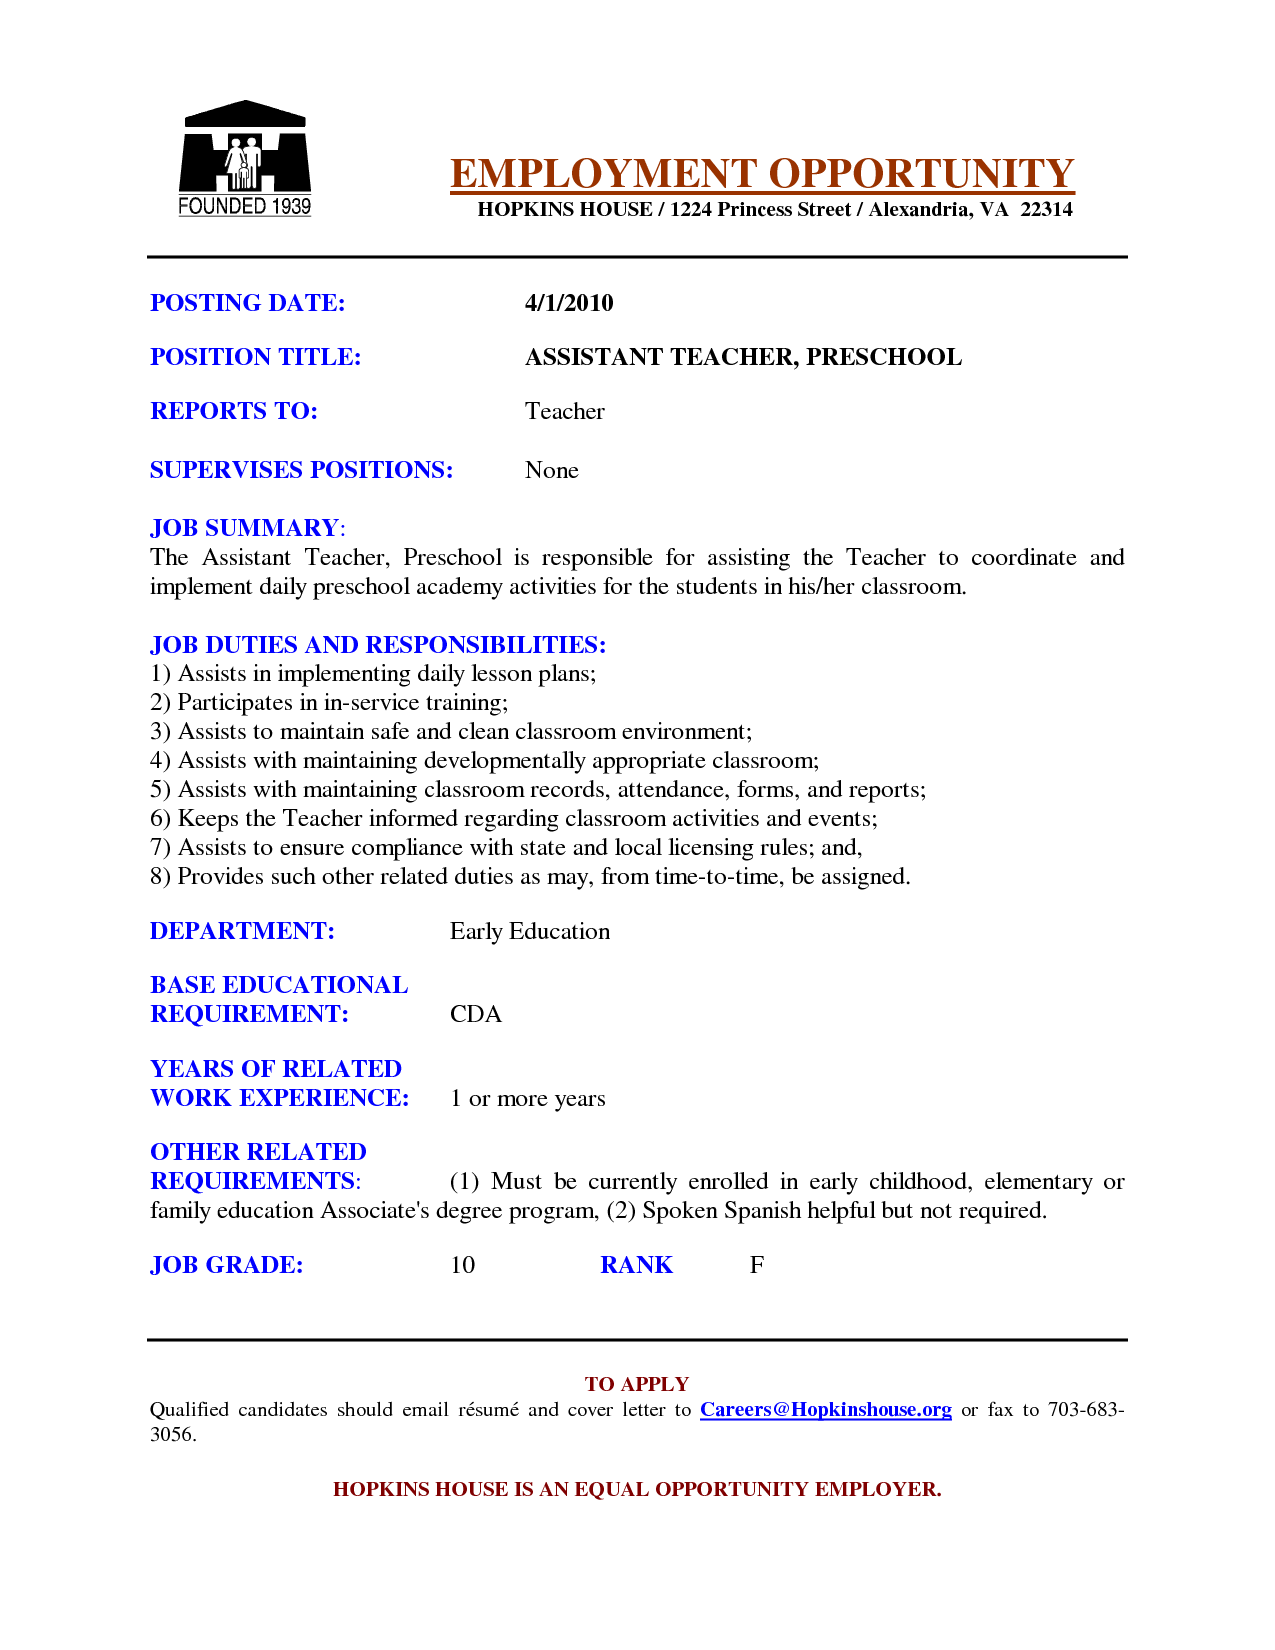 kindergarten teacher resume samples pre k teacher resume kindergarten teacher resume samples sample kindergarten teacher resume samples sample teacher